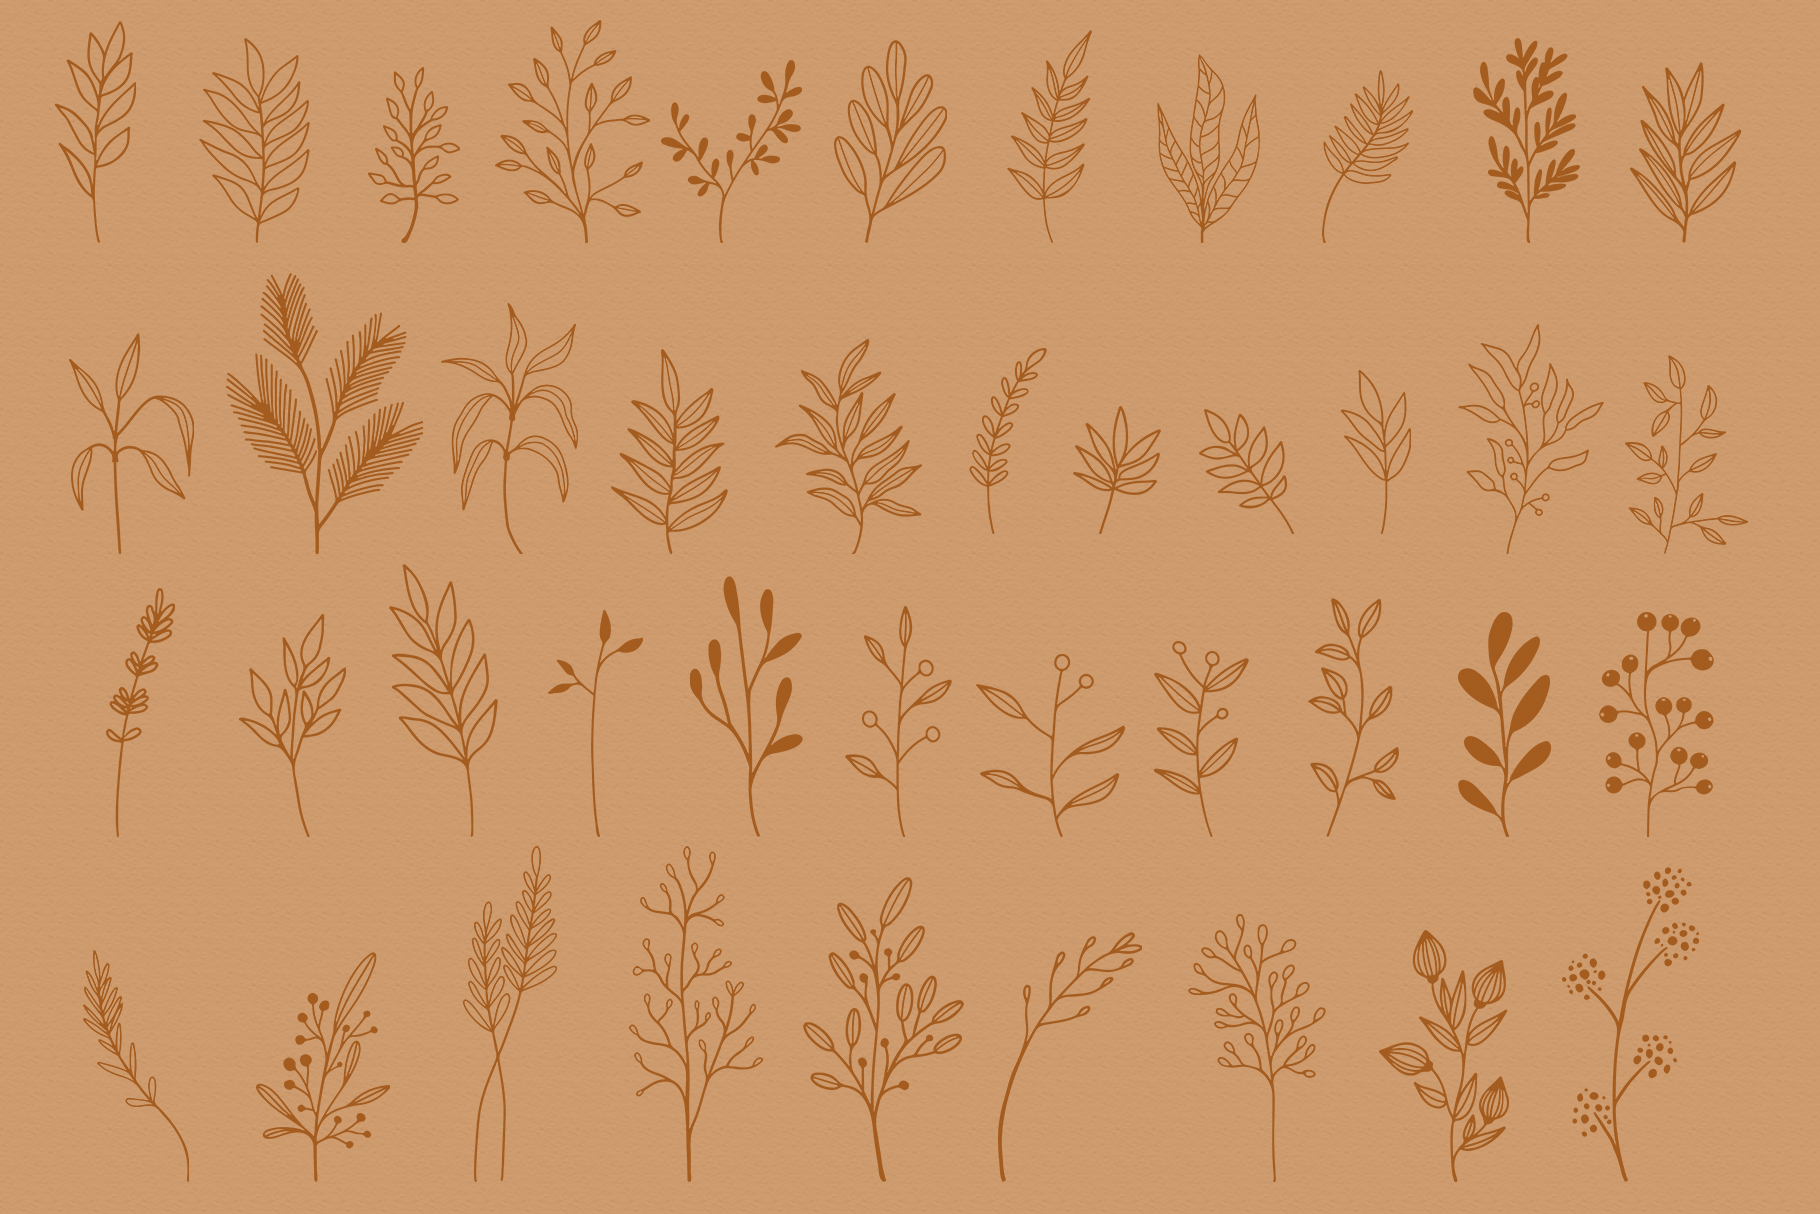 Floral Vector Elements Volume 002 example image 8